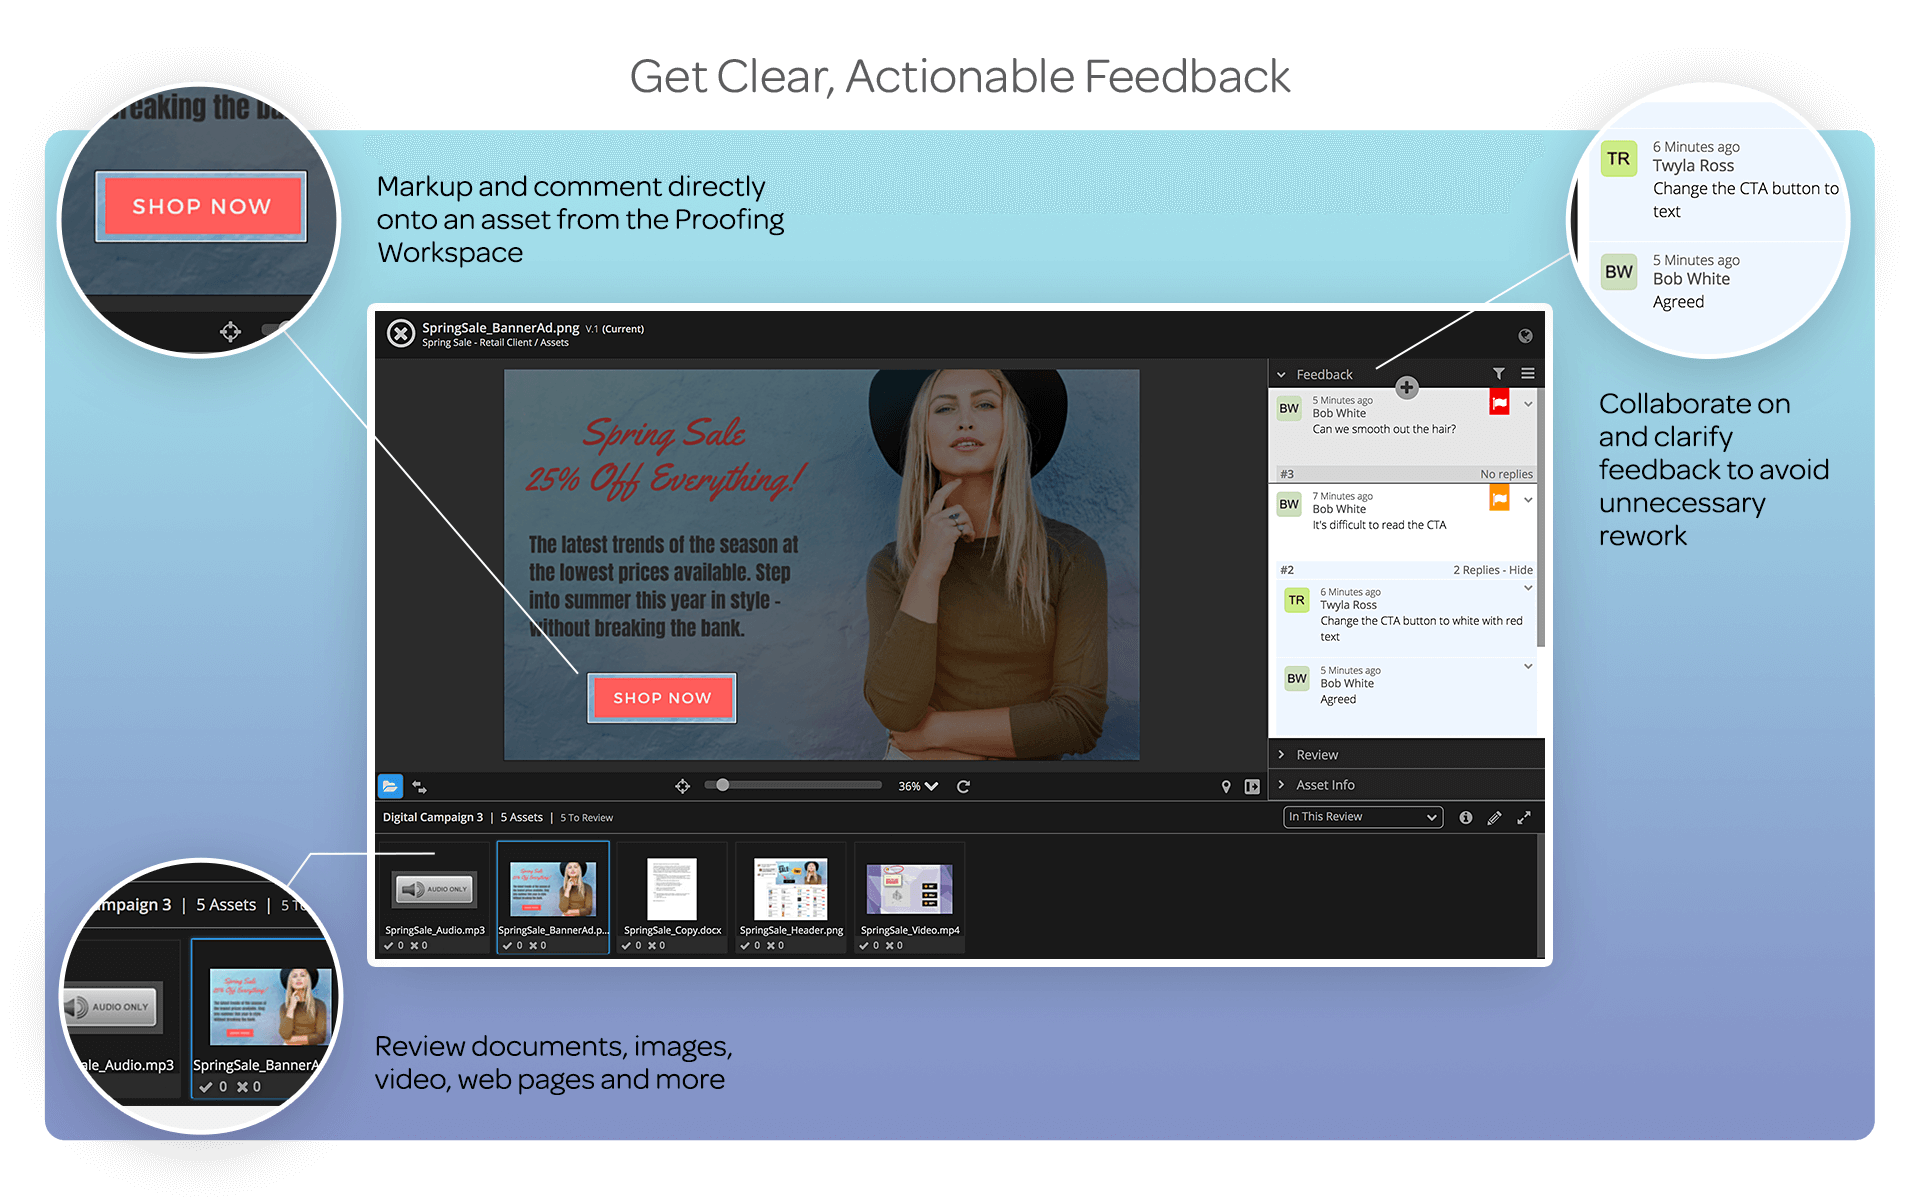 Get Clear Actionable Feedback